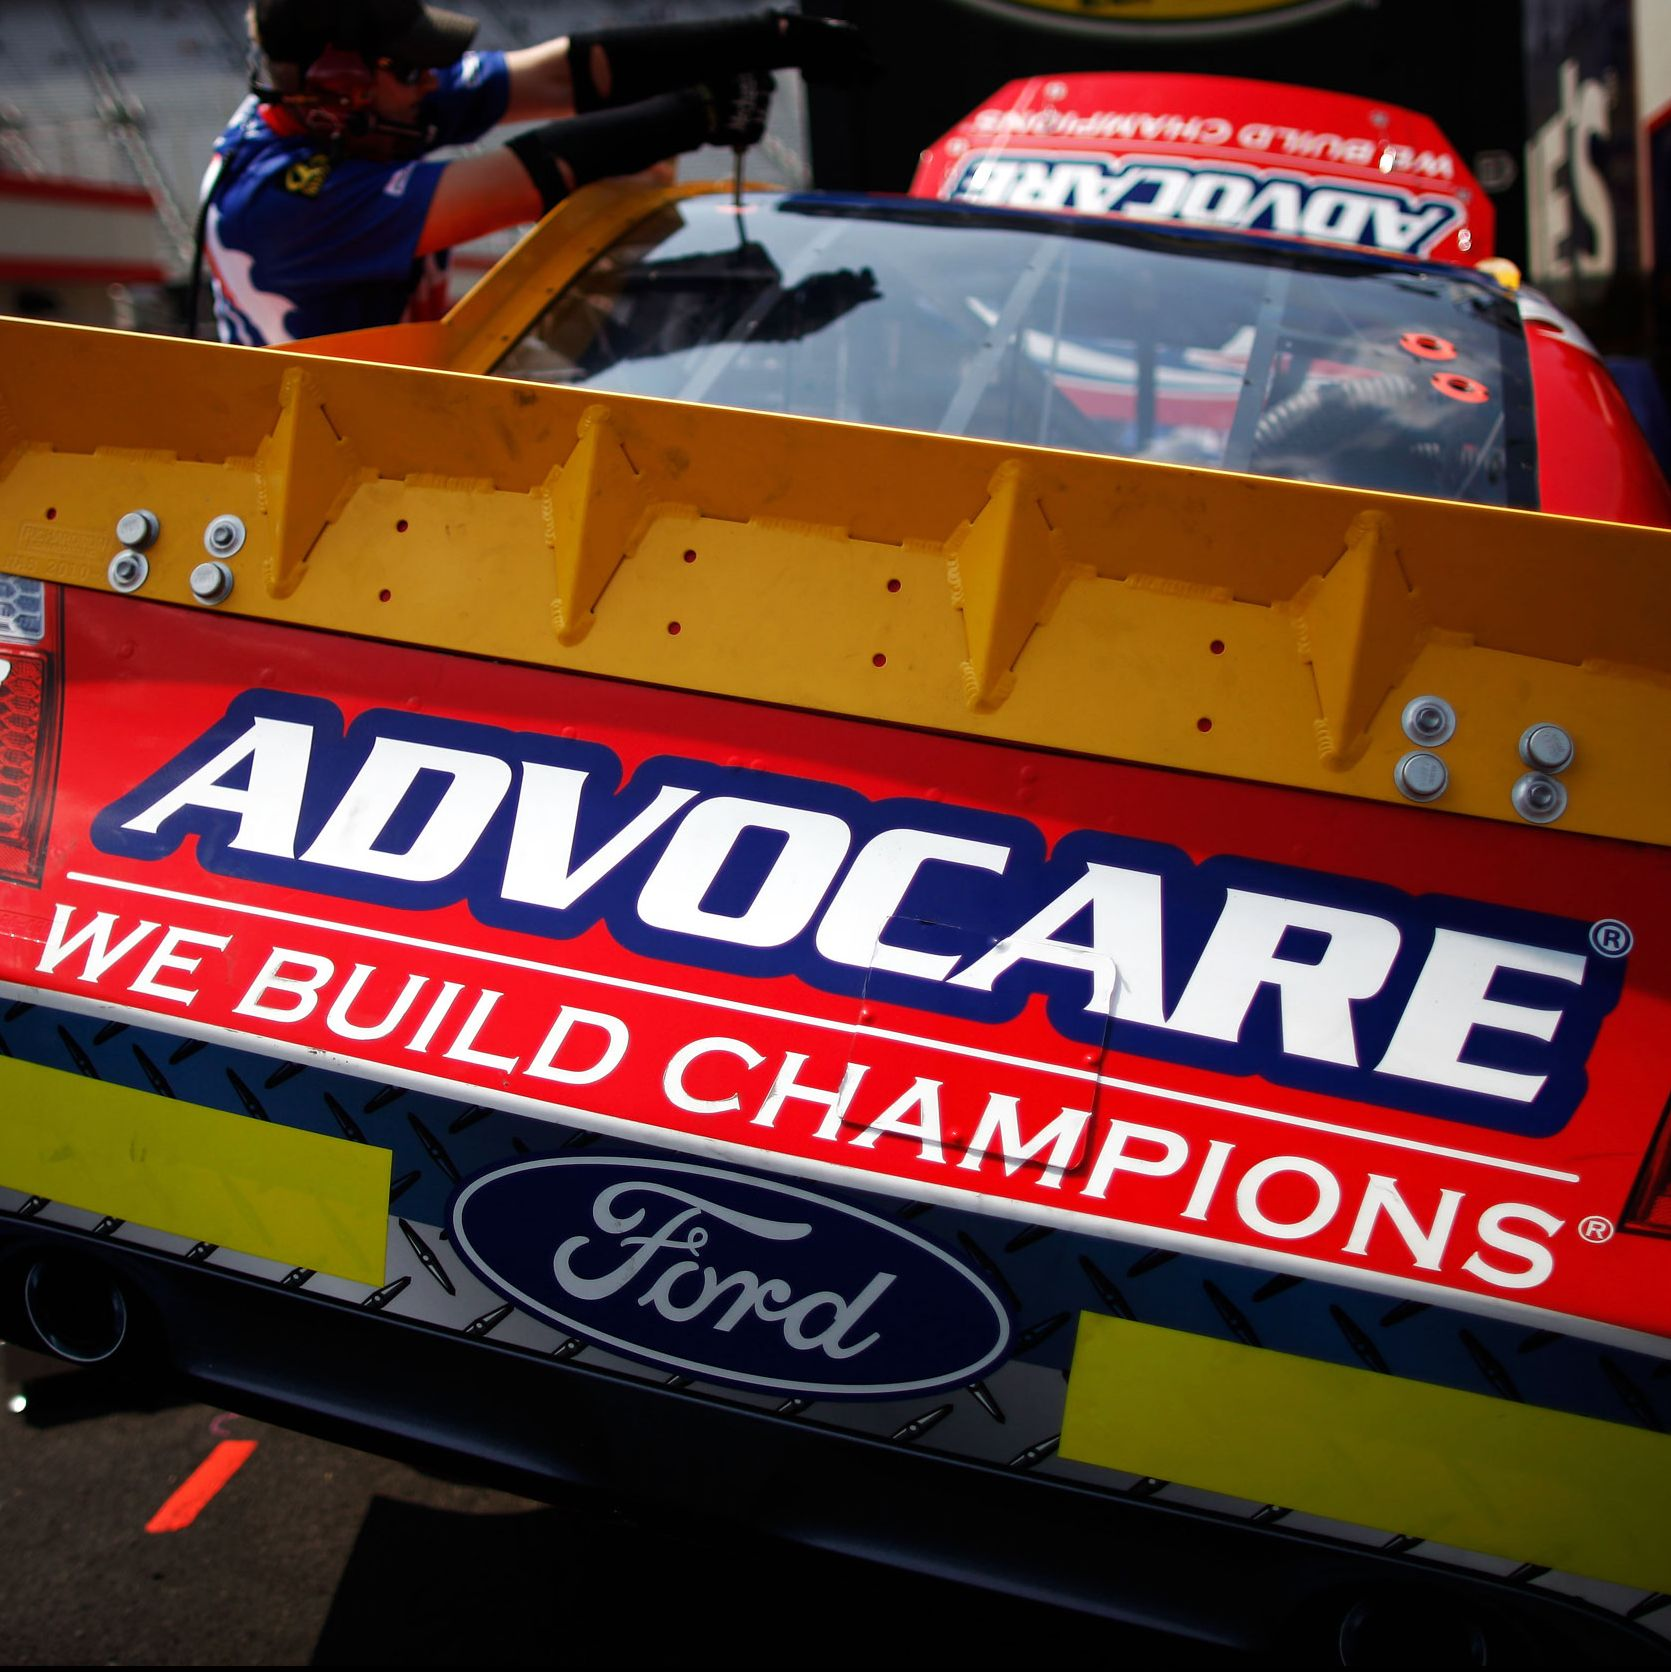 What Is Advocare, Anyway? Here's the Murky Nutrition Behind The Cult-Like Supplement Brand.